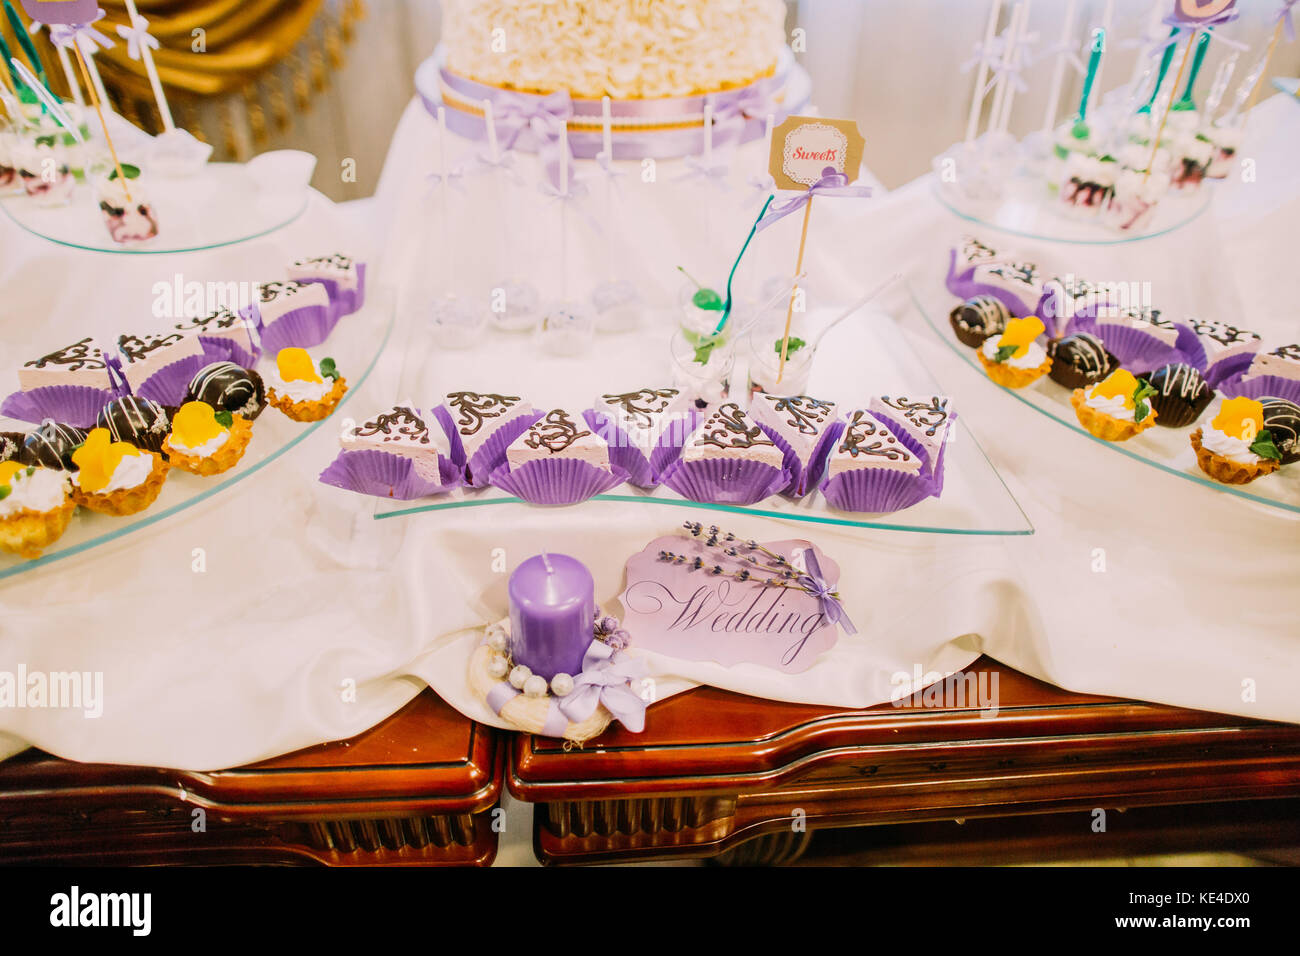 Wedding Dessert Bar Close Up View Of The Sweet Cakes On The Table